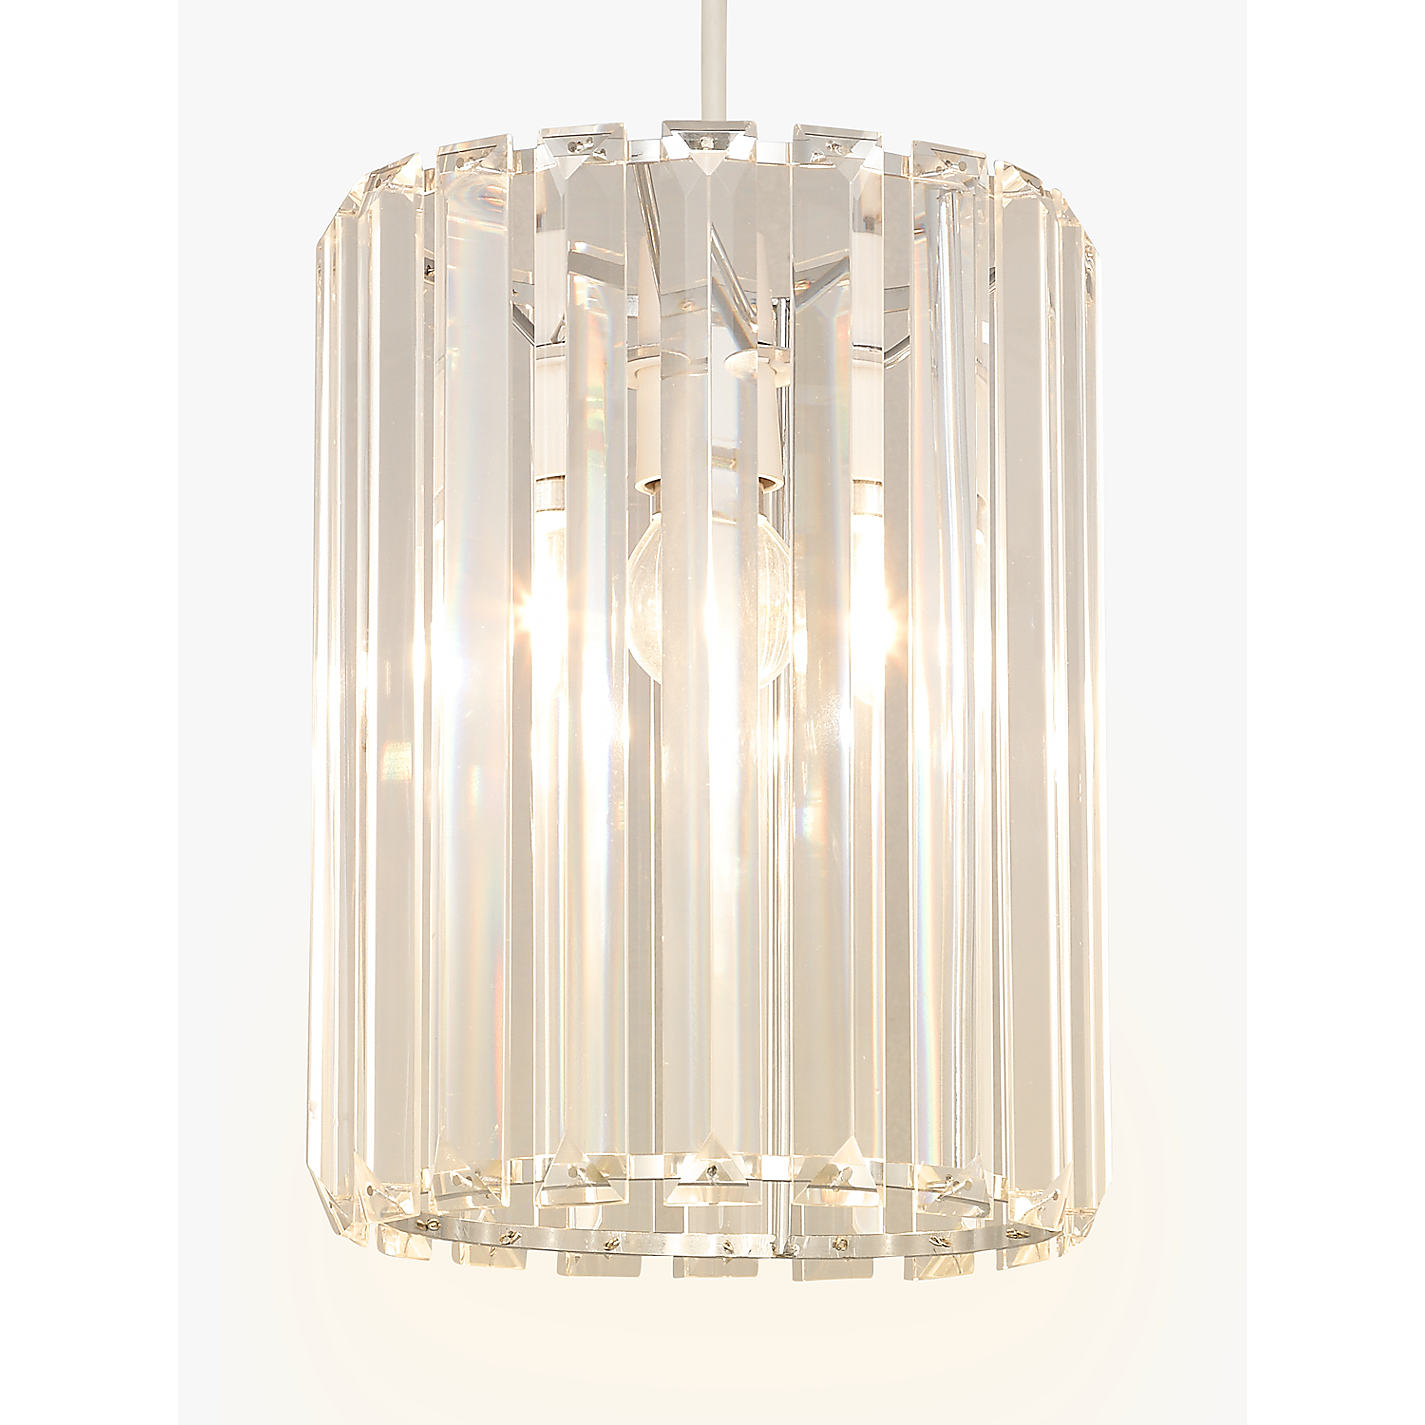 Bathroom Wall Lights John Lewis buy john lewis frieda easy-to-fit crystal ceiling shade | john lewis